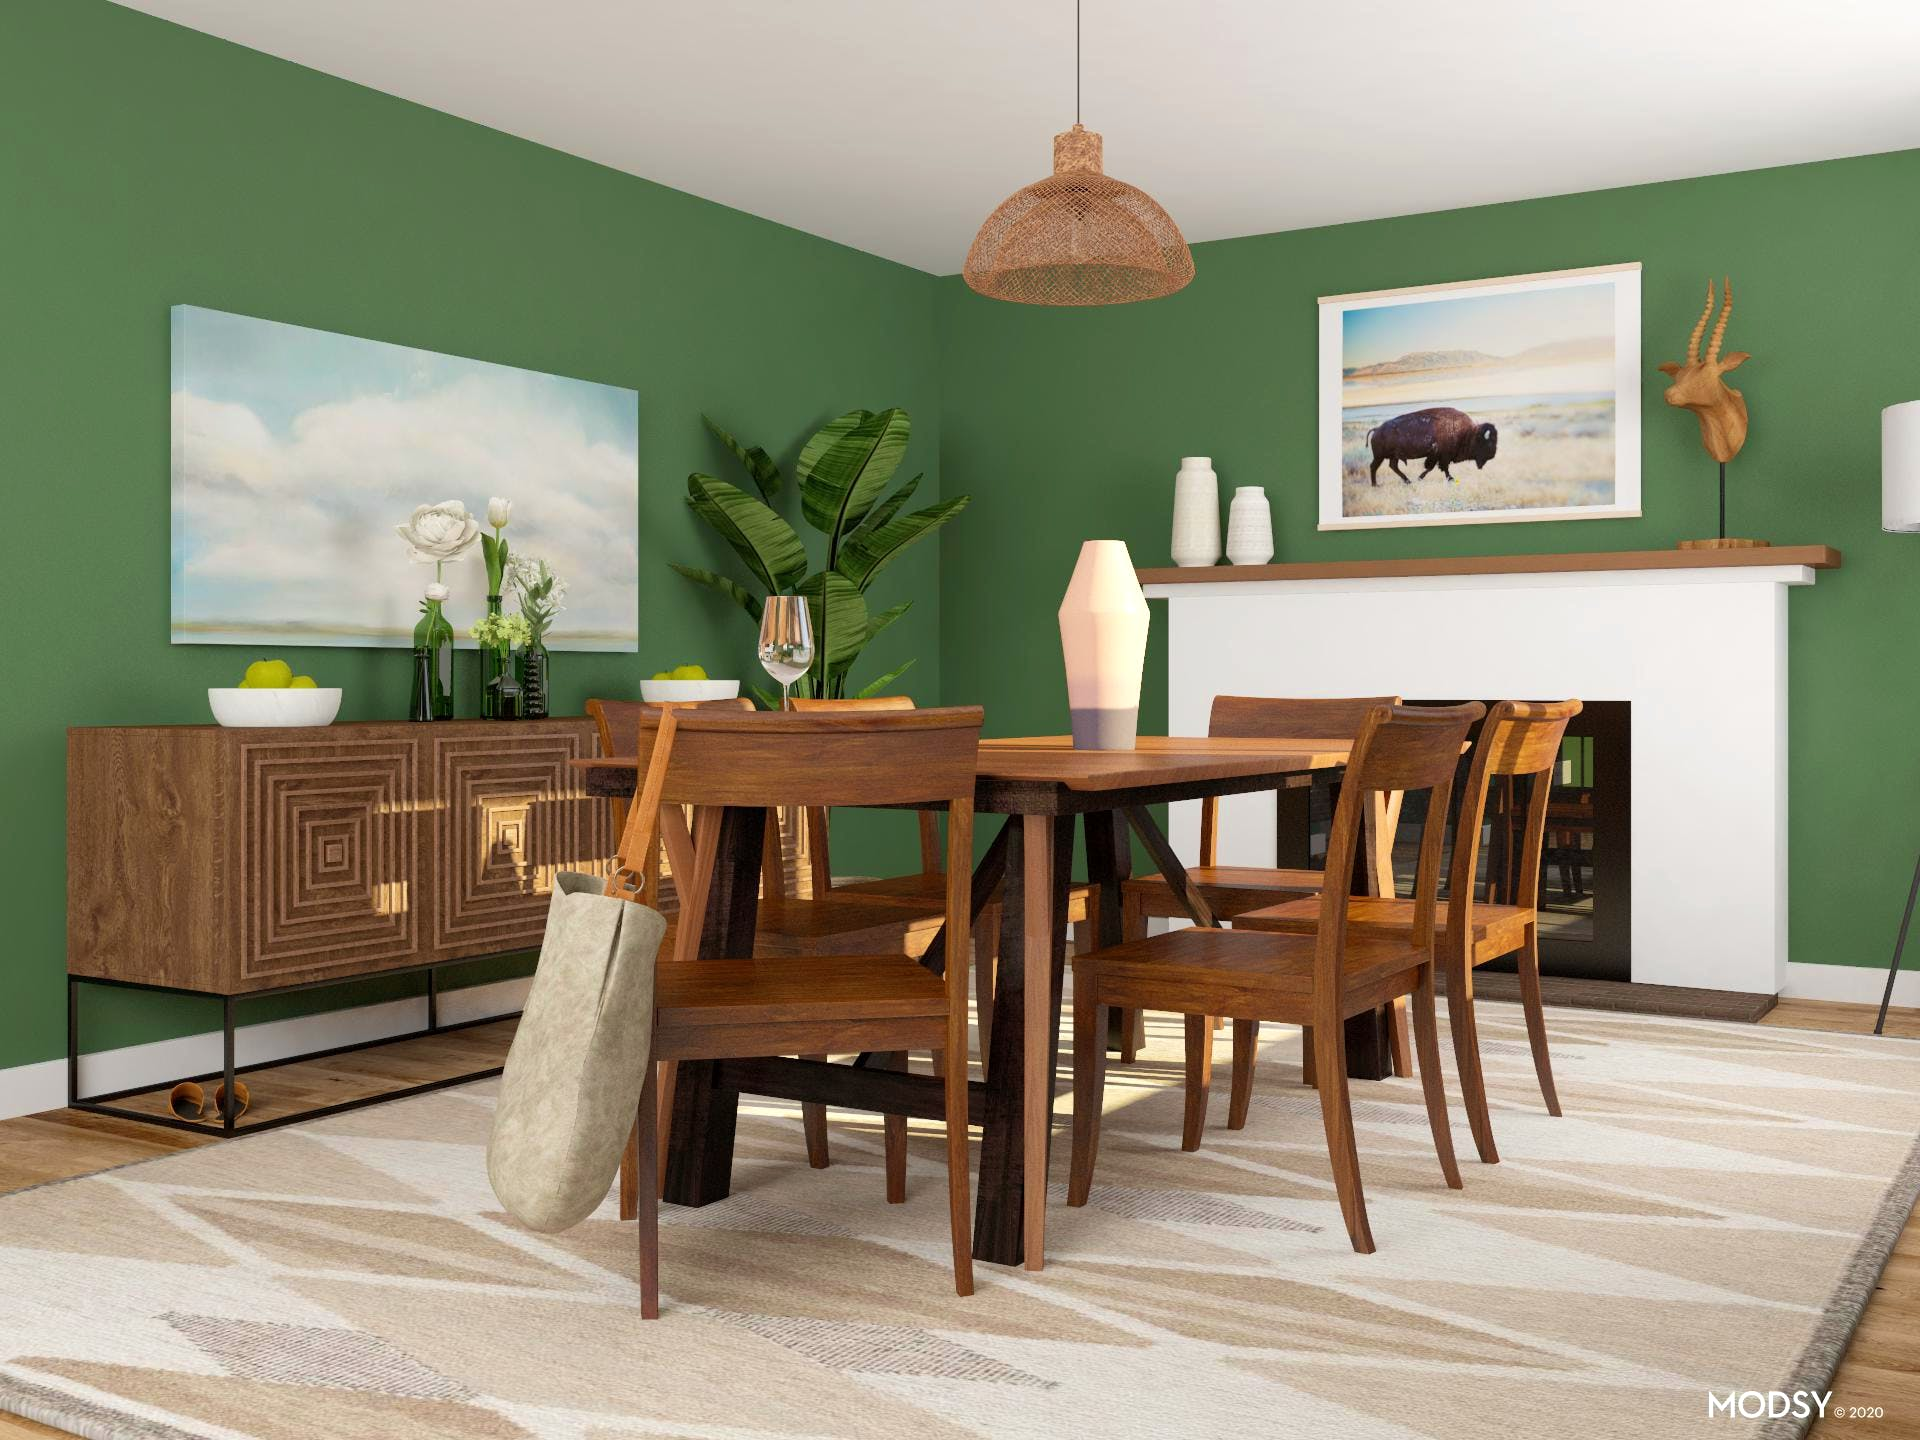 Rich in Earth Tones: A Minimalist Dining Room